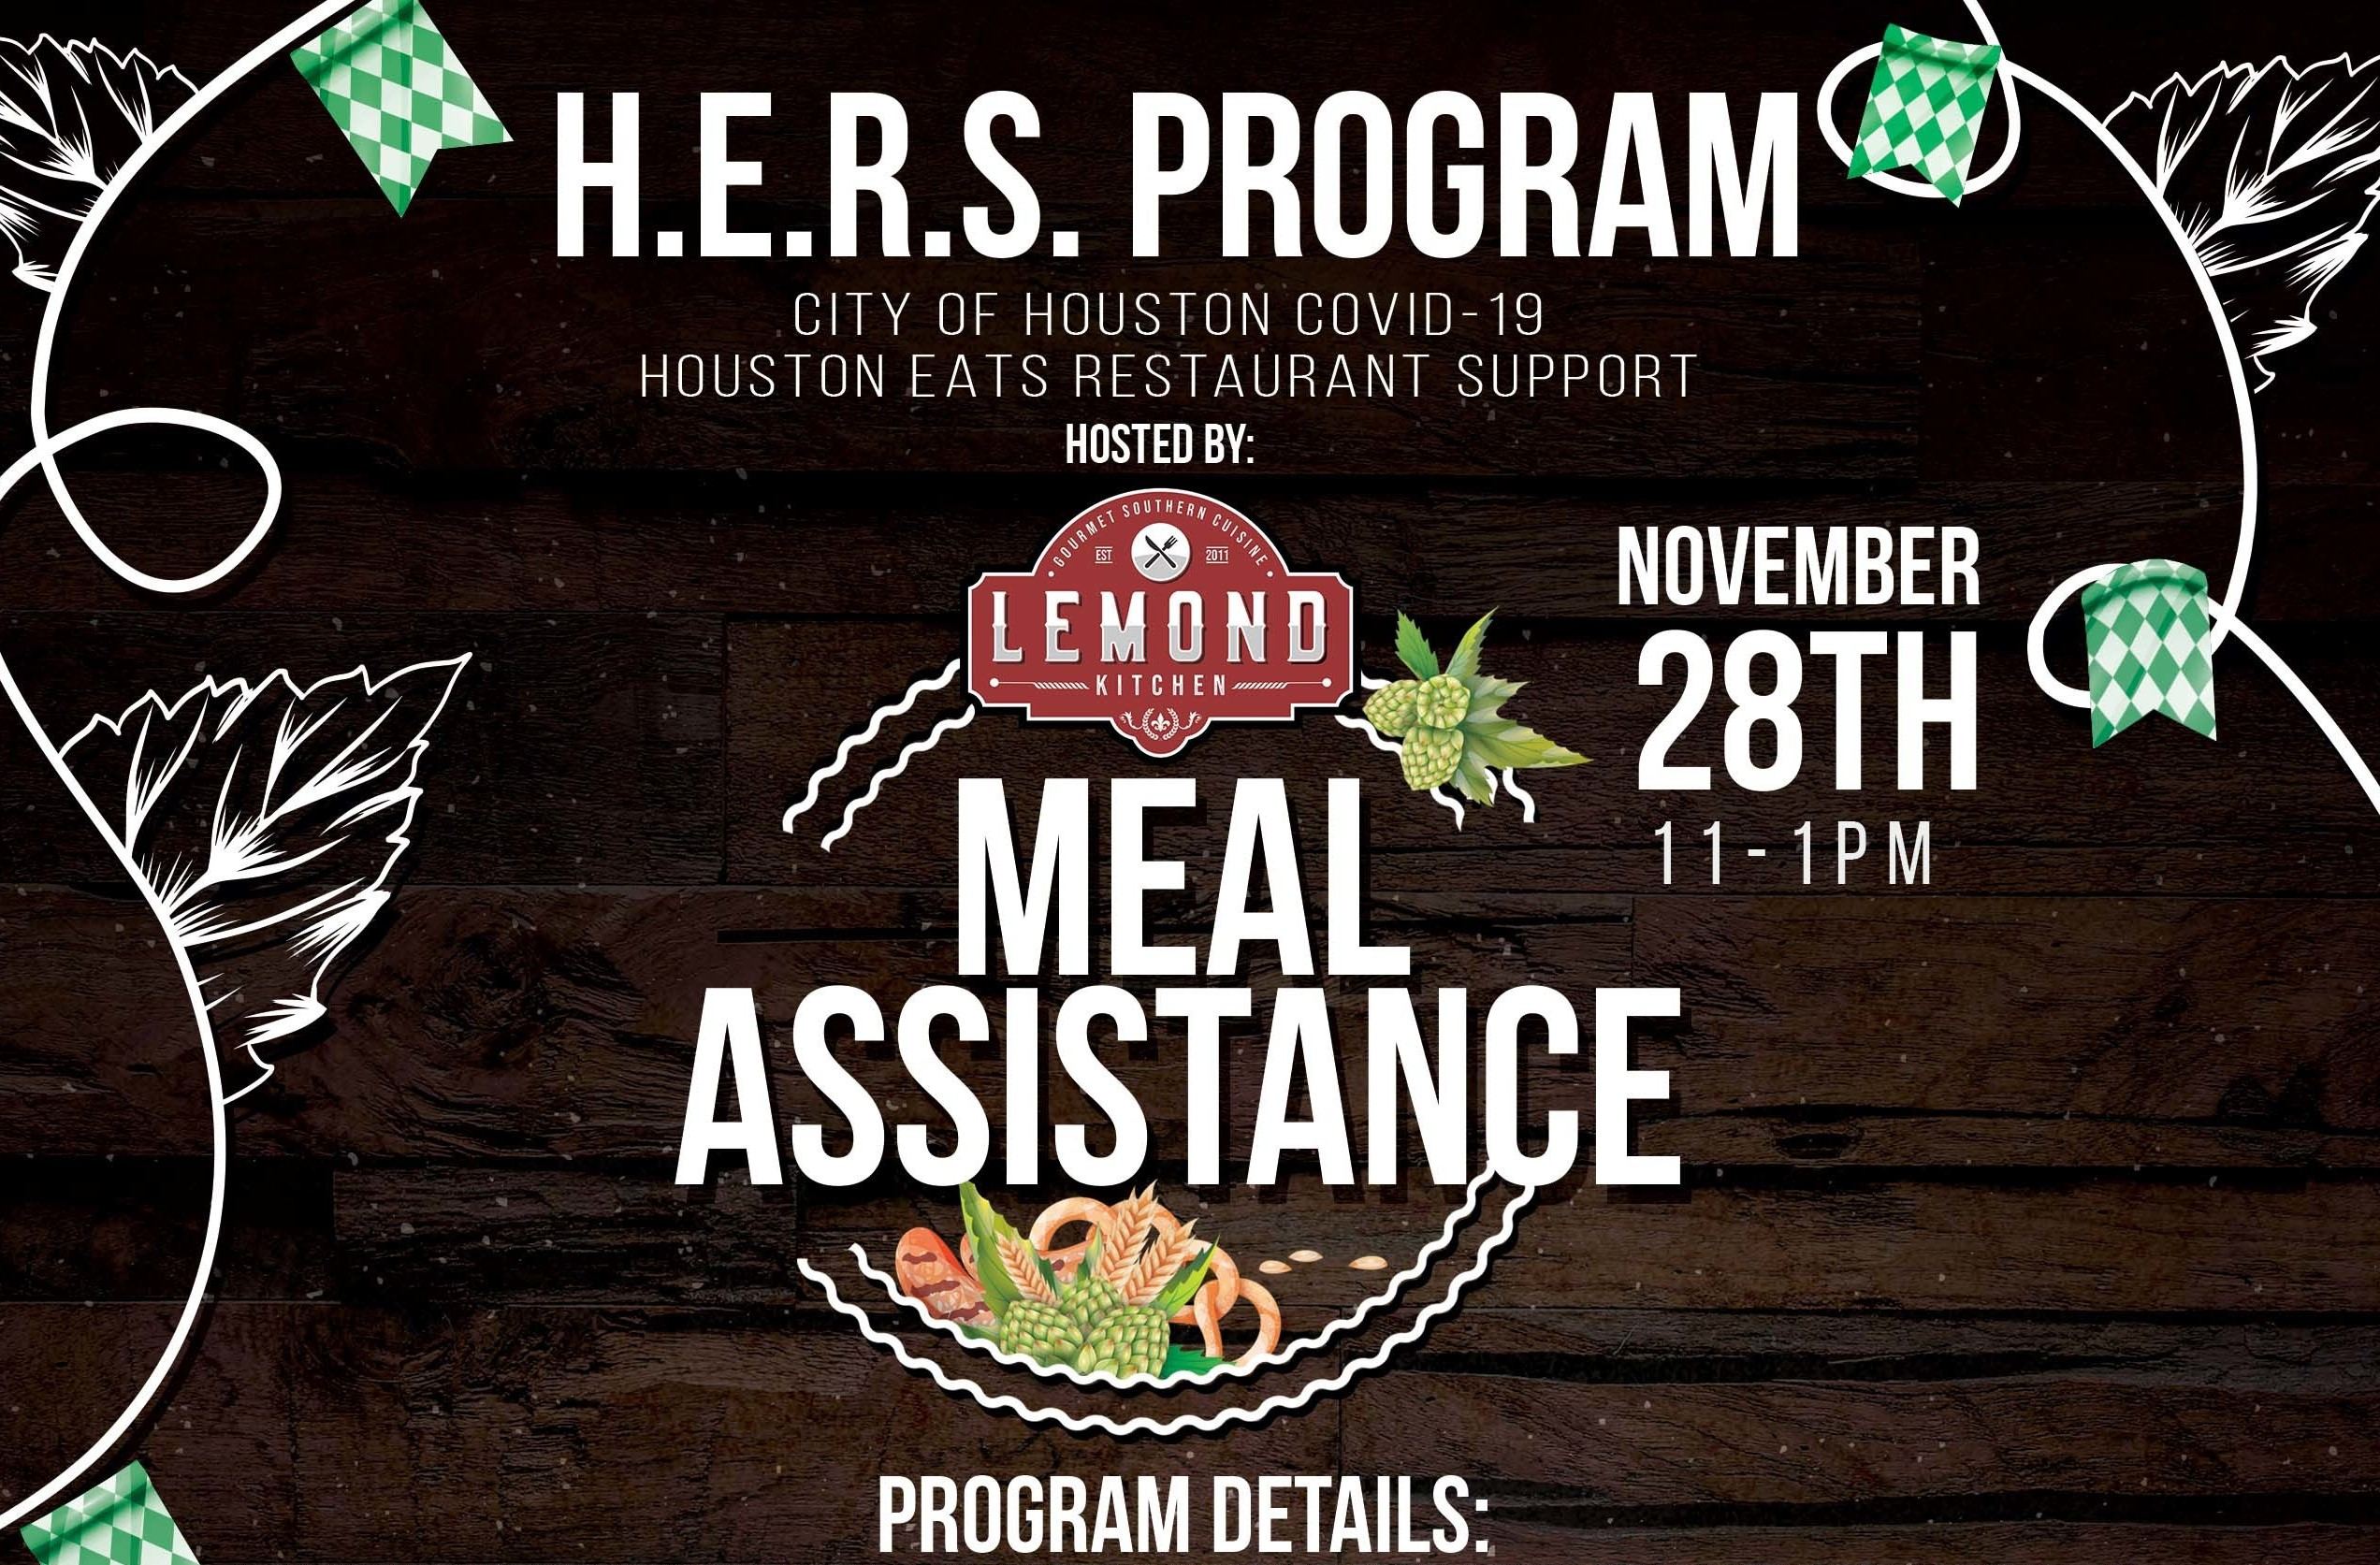 Lemond Kitchen hosts H.E.R.S. Program meal assistance this Saturday